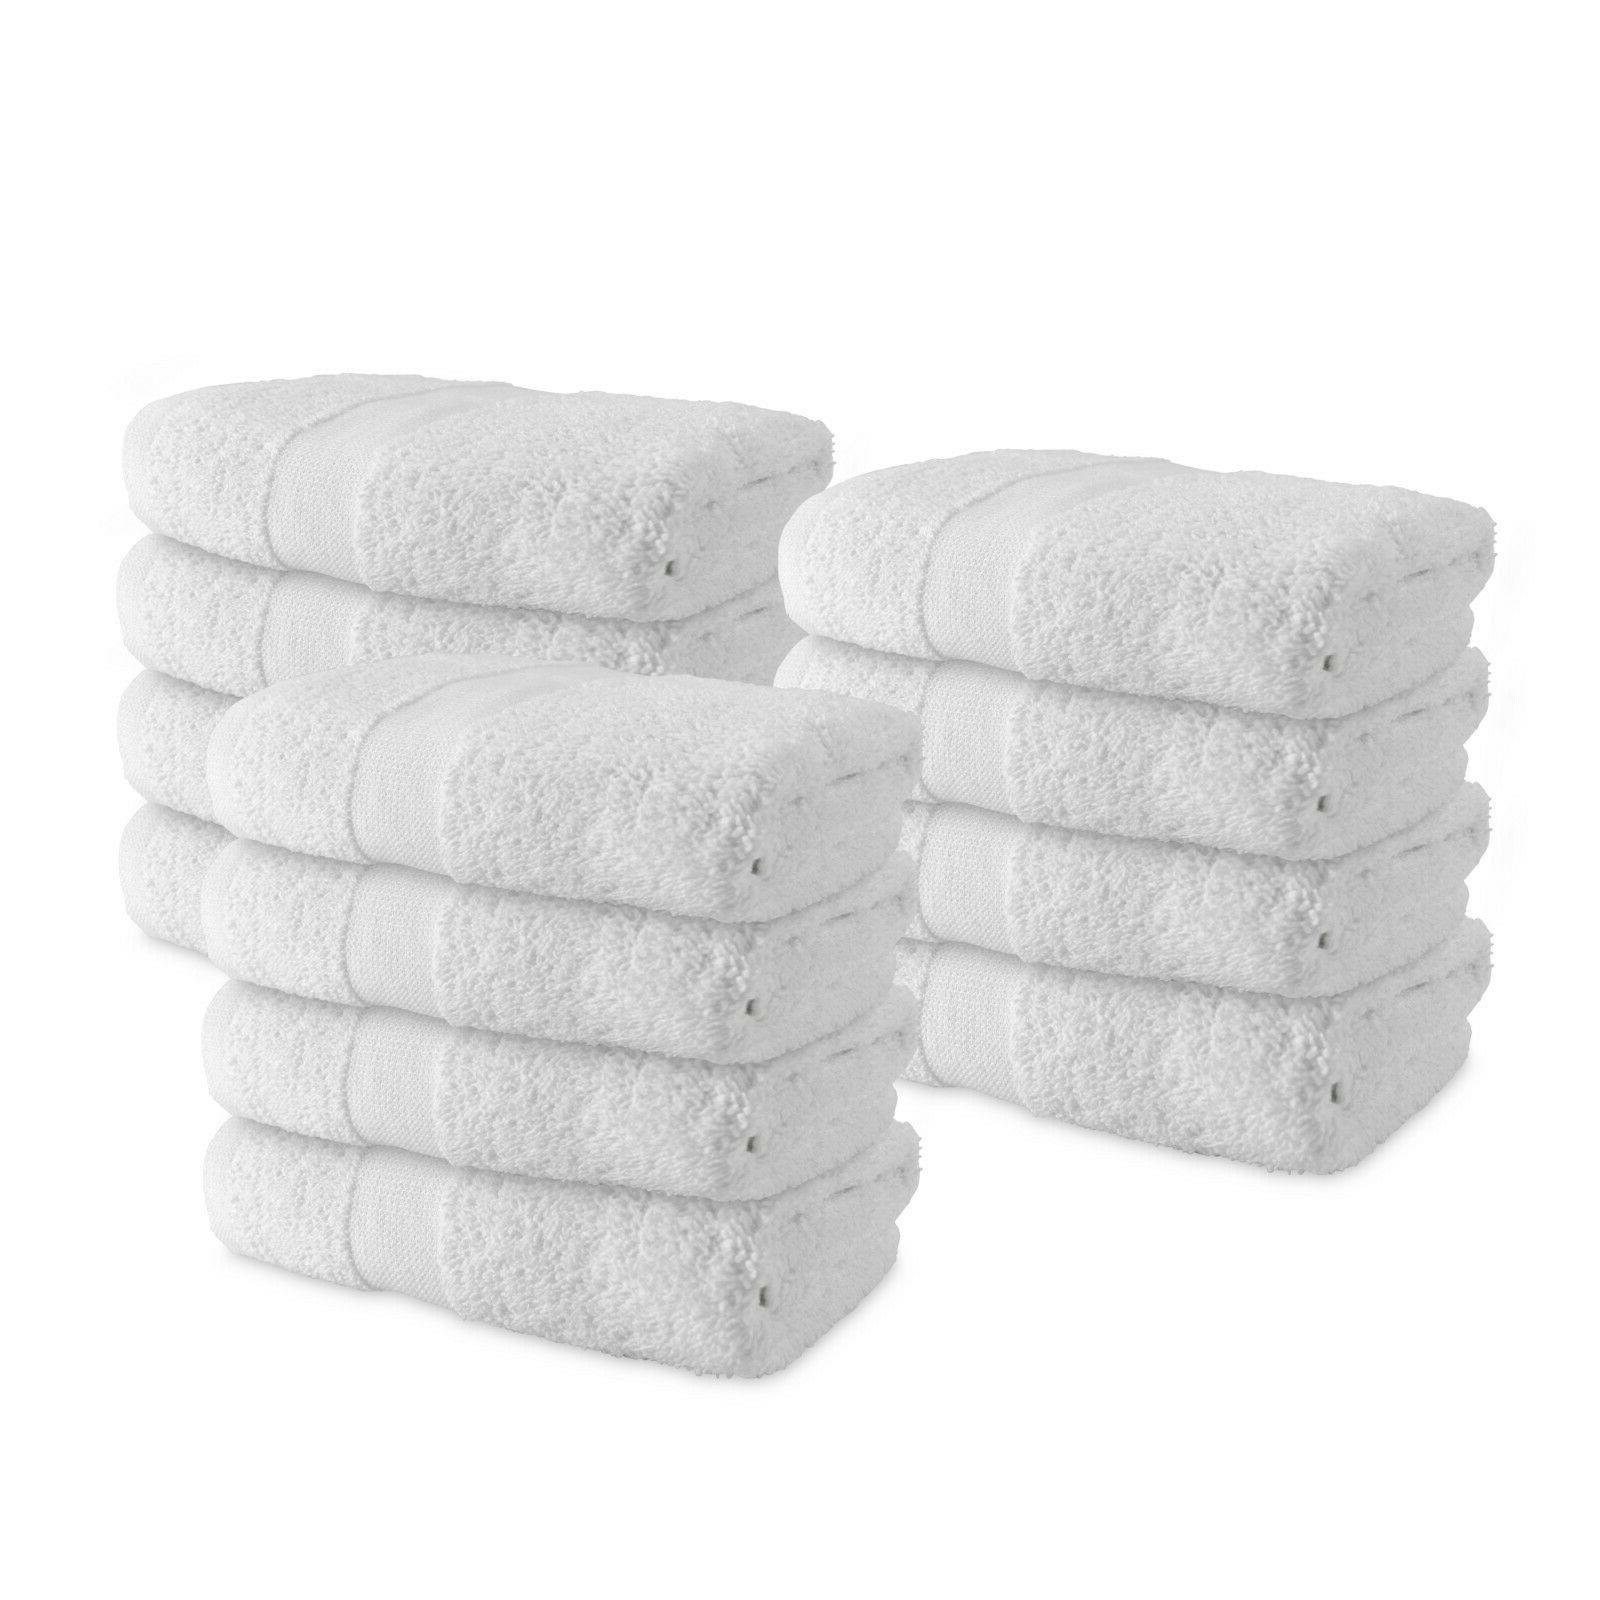 12 Pack of Admiral Hand Towels - White - 16 x 27 - Bulk Bath